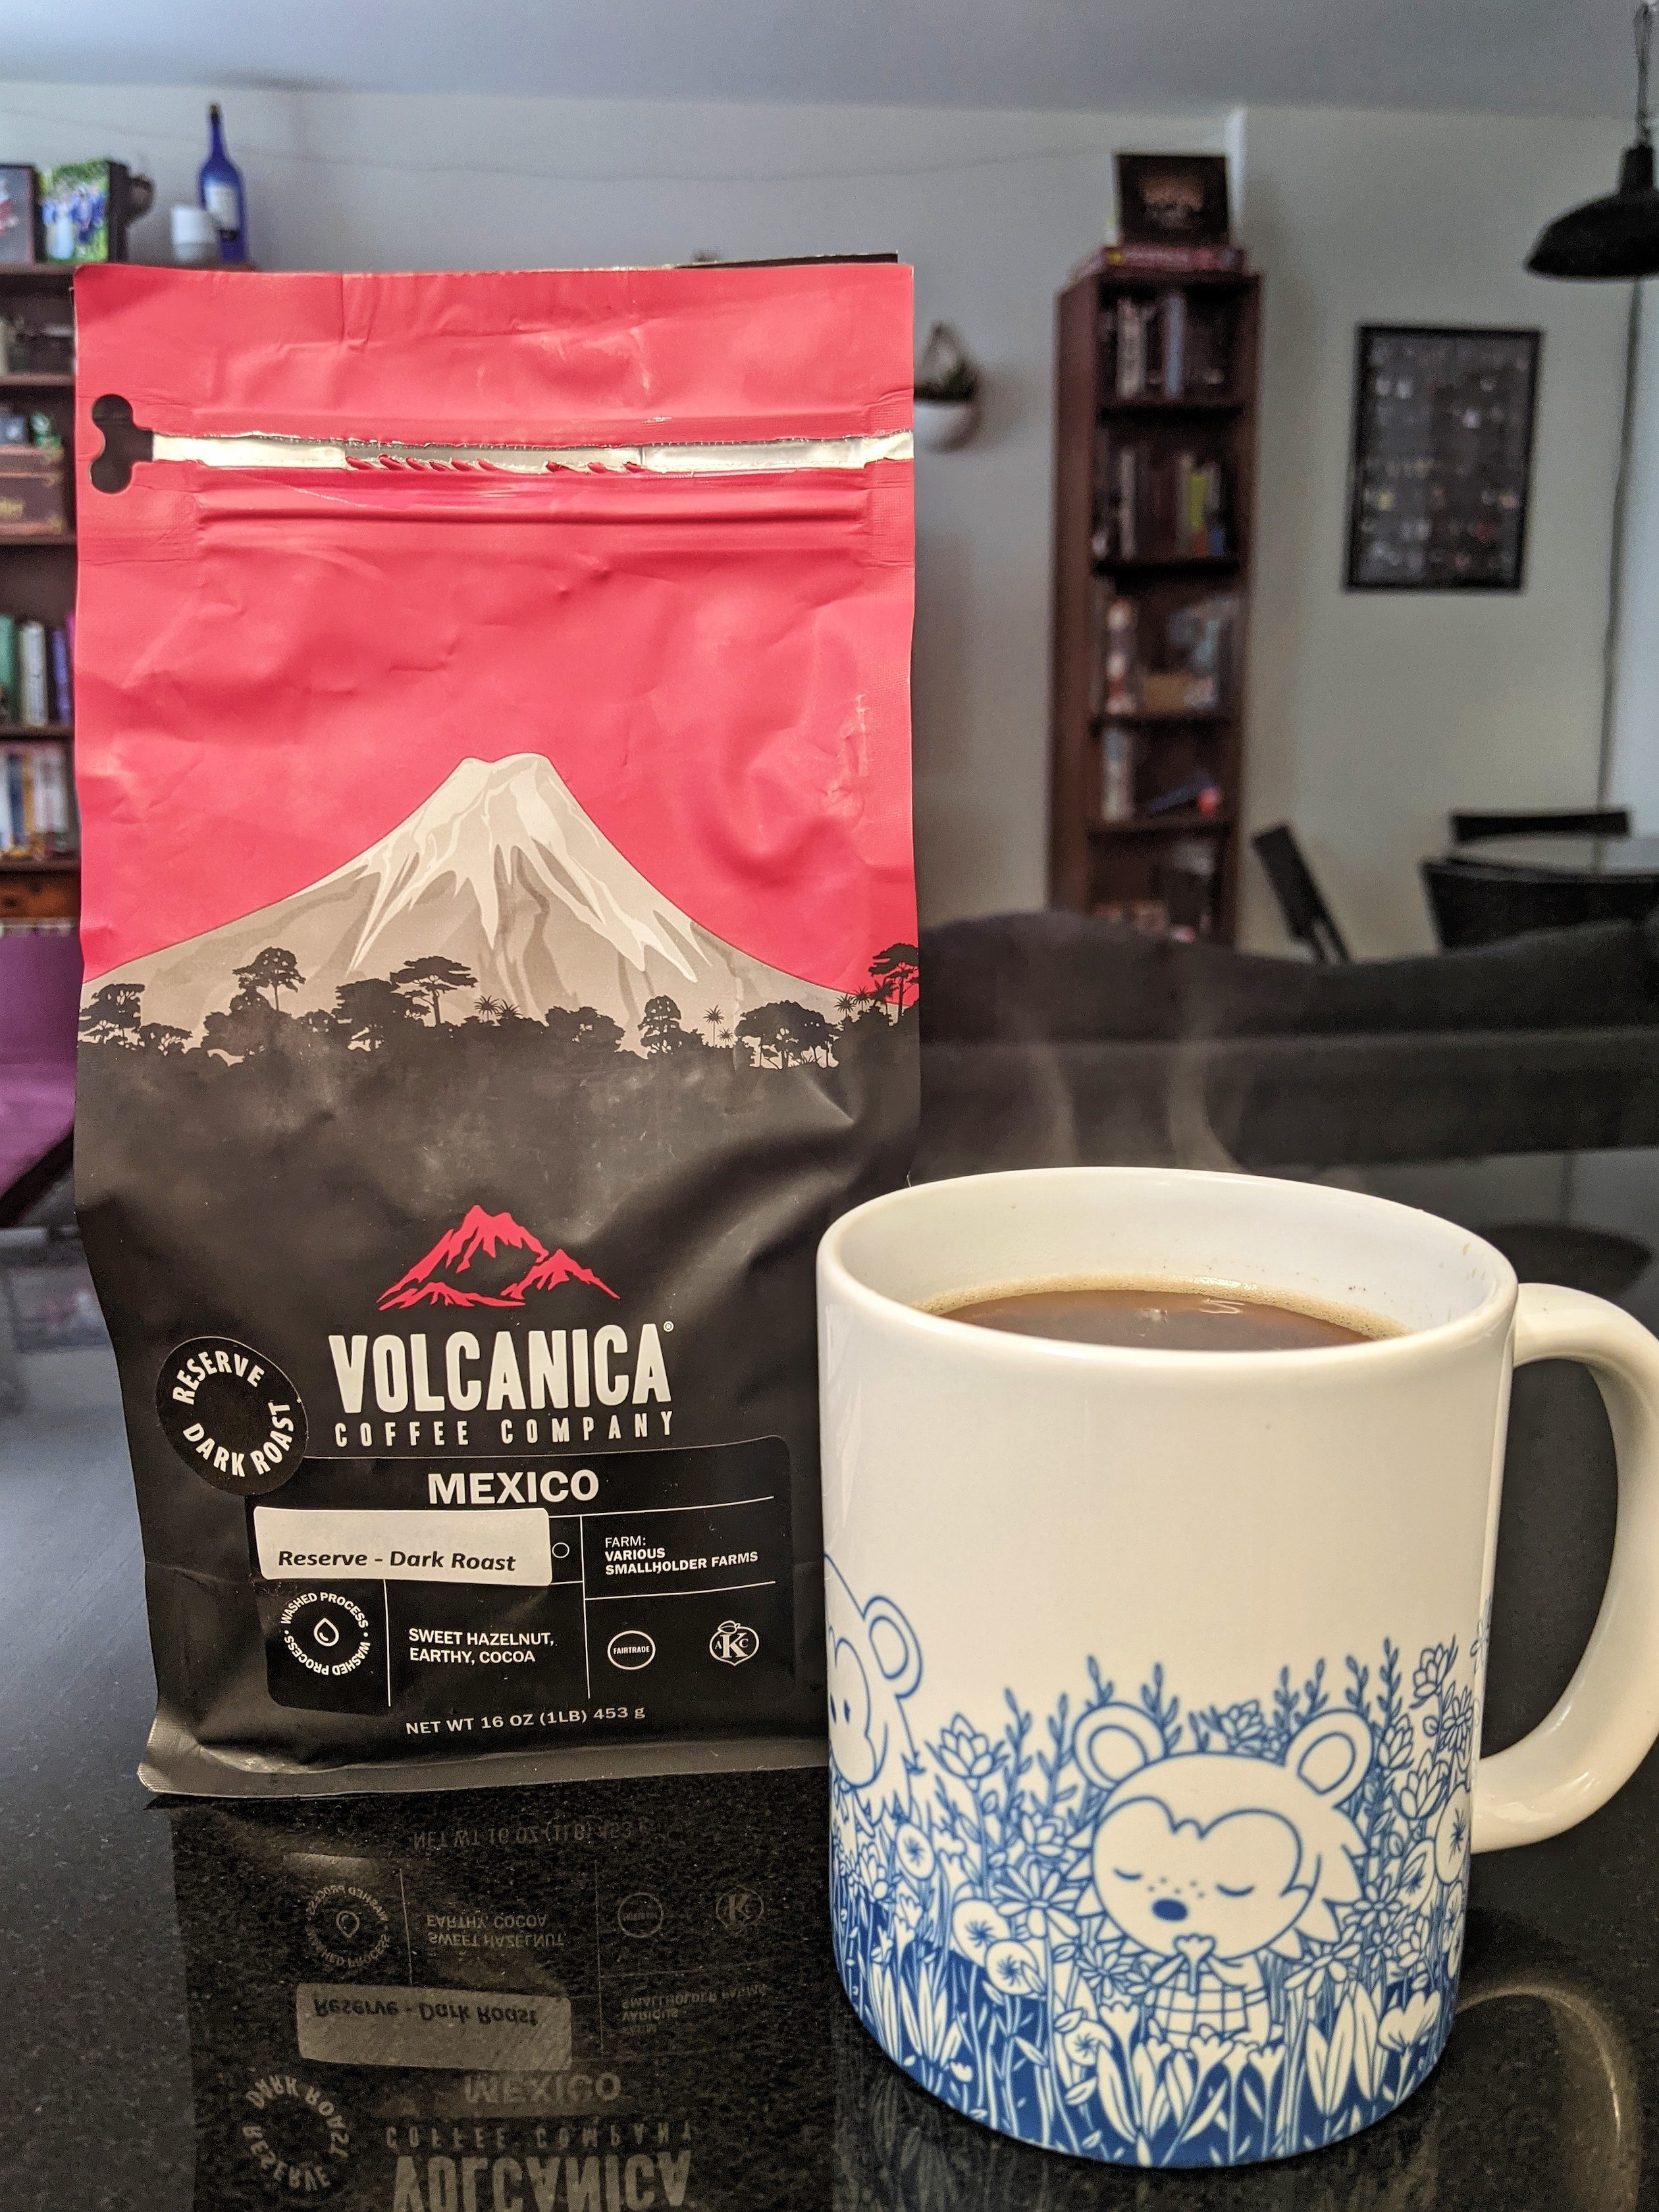 A bag of Mexican Reserve Dark Roast coffee beans next to a mug filled with coffee